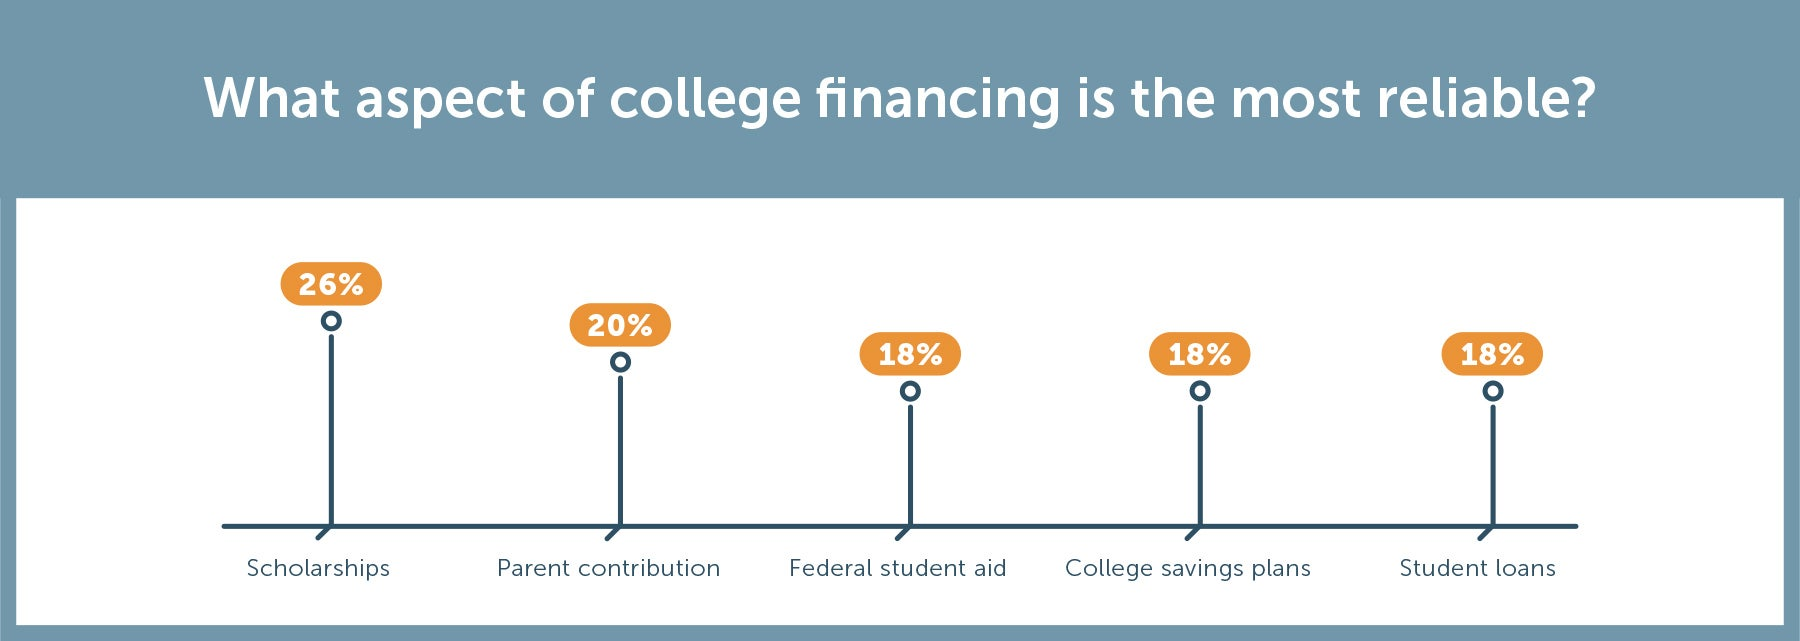 26% of students find scholarships the most reliable way to pay for college